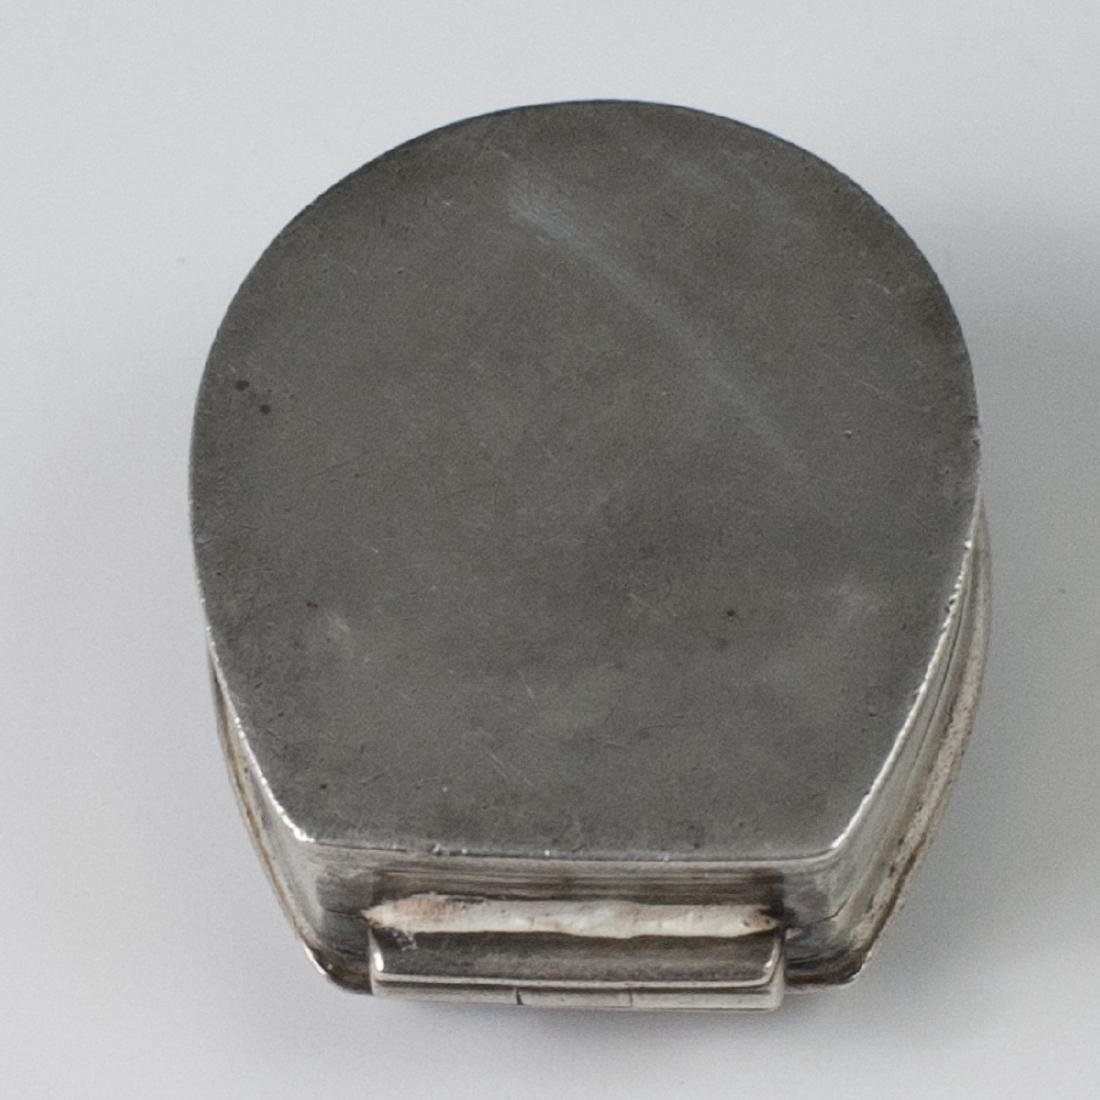 Antique Sterling Enamel Pill Box - 2